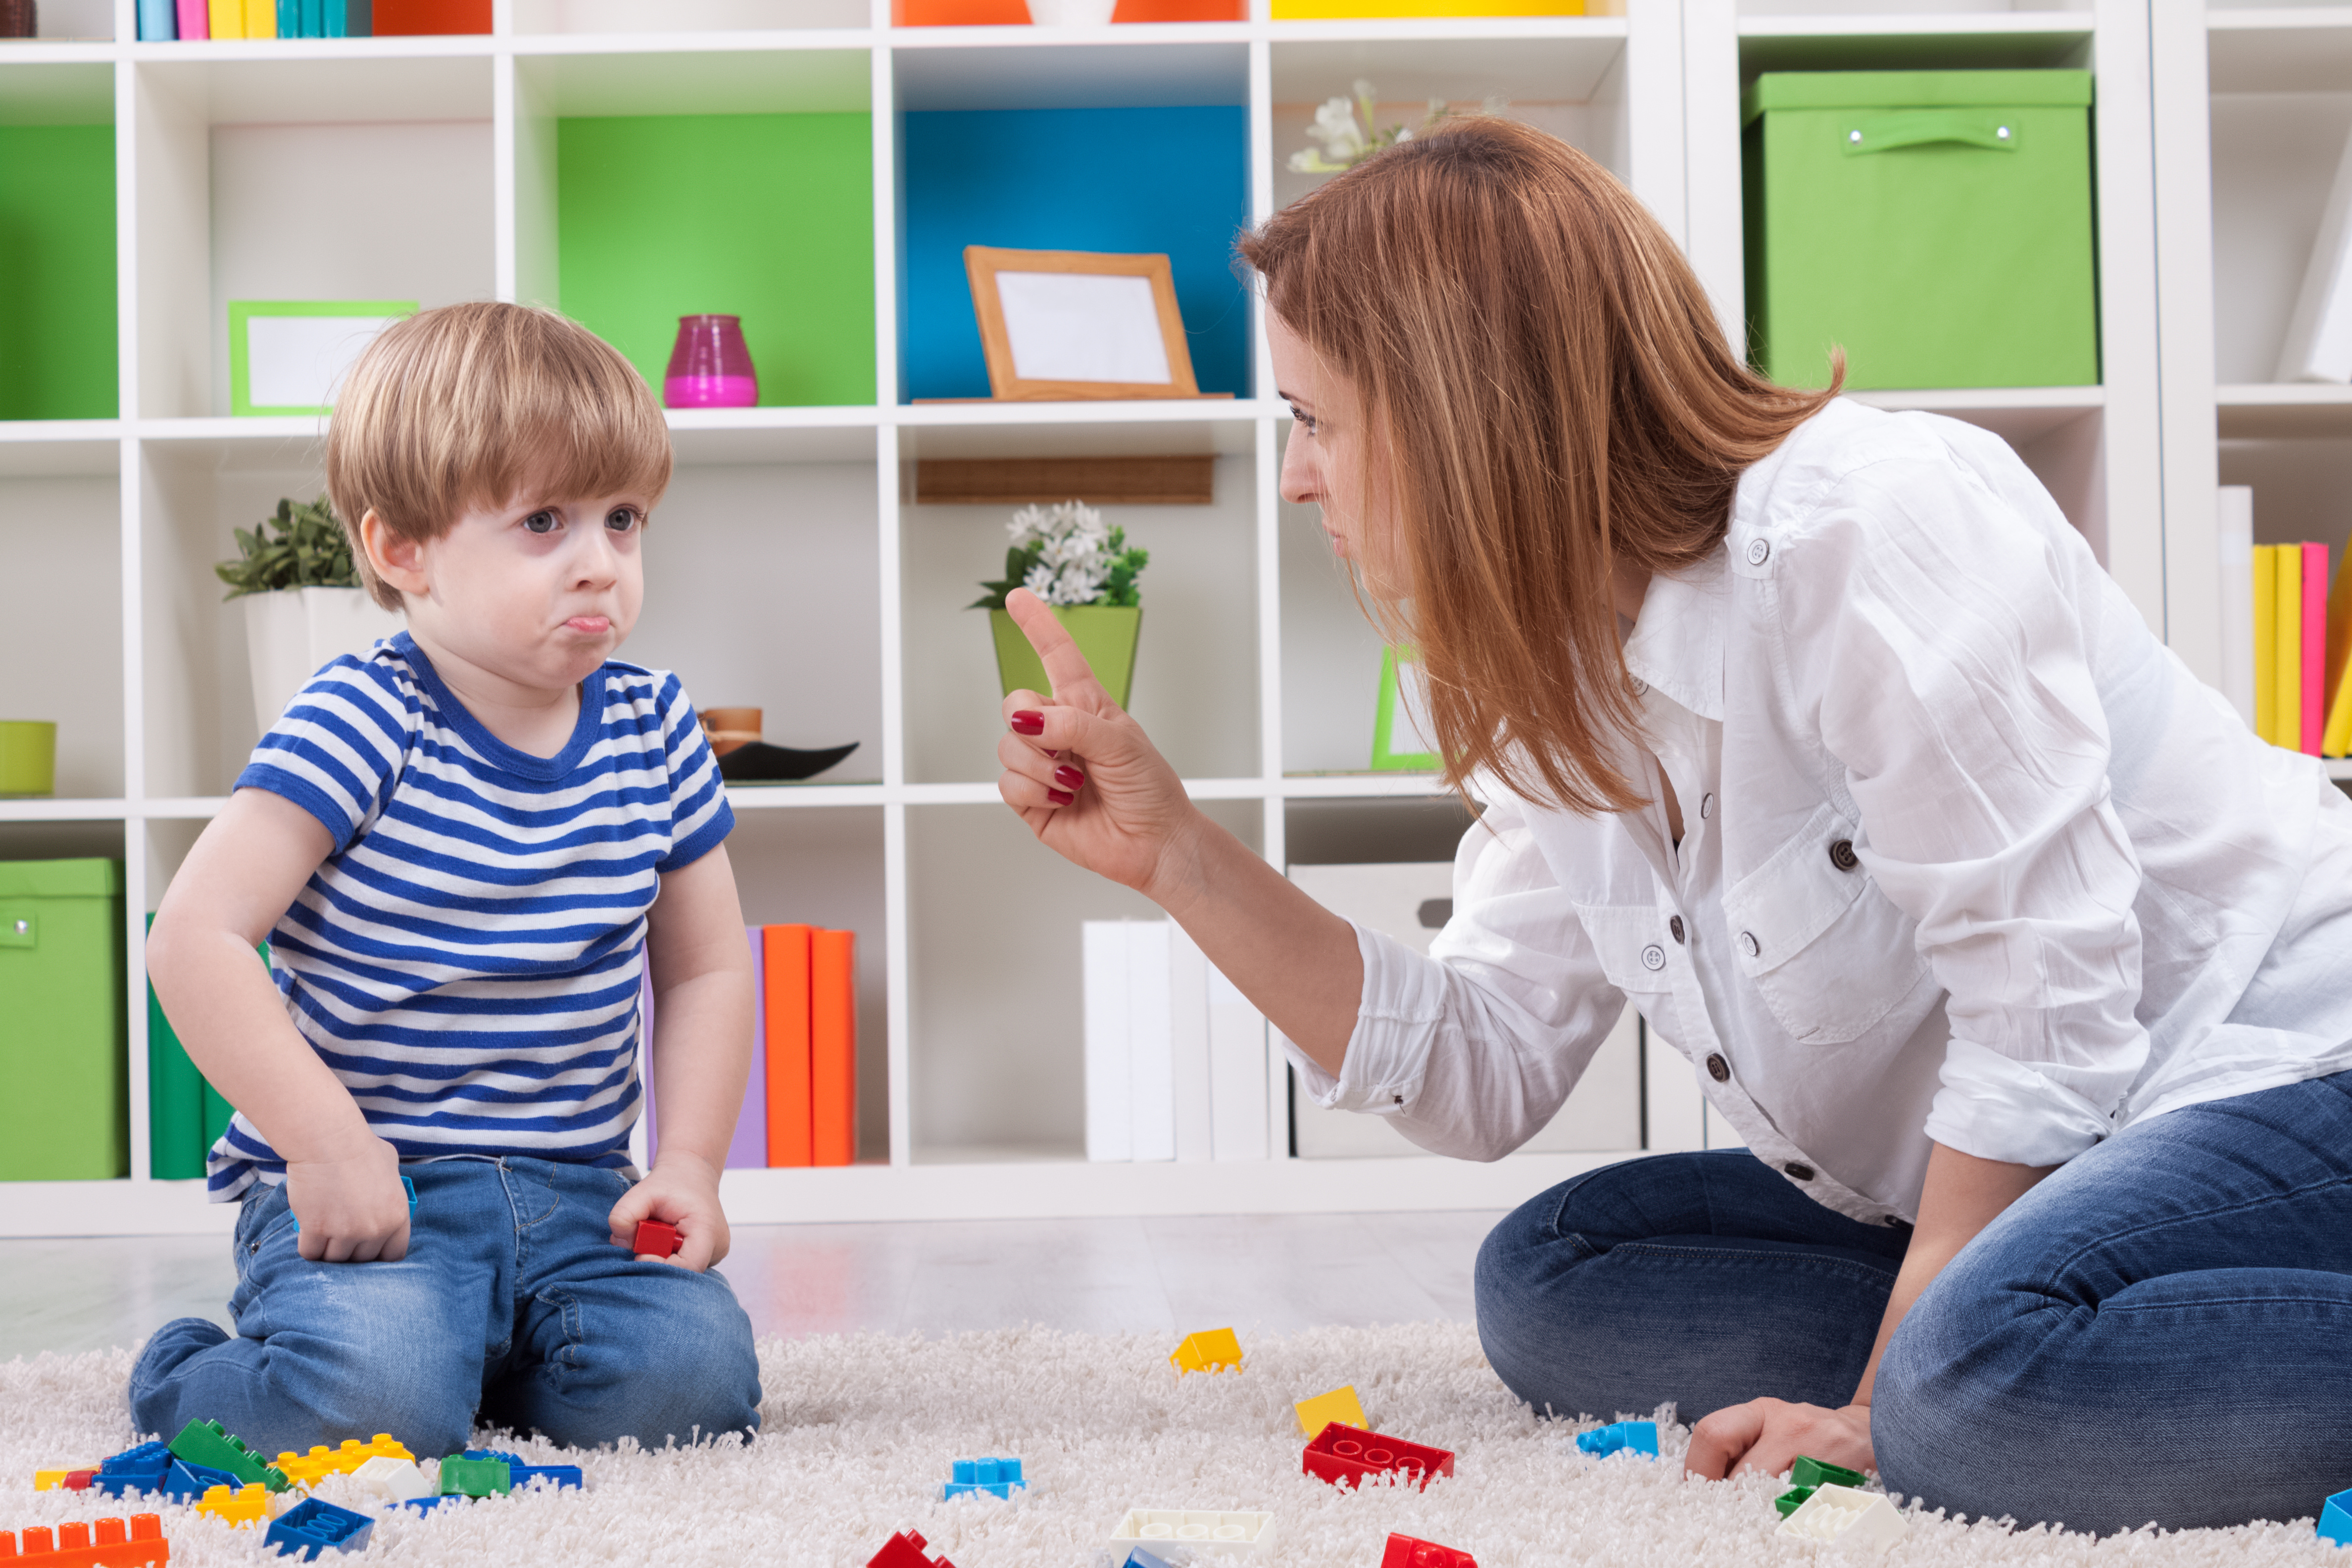 There is a contact: 7 strategies, how not to destroy the child-parent relationship and find a common language with a teenager